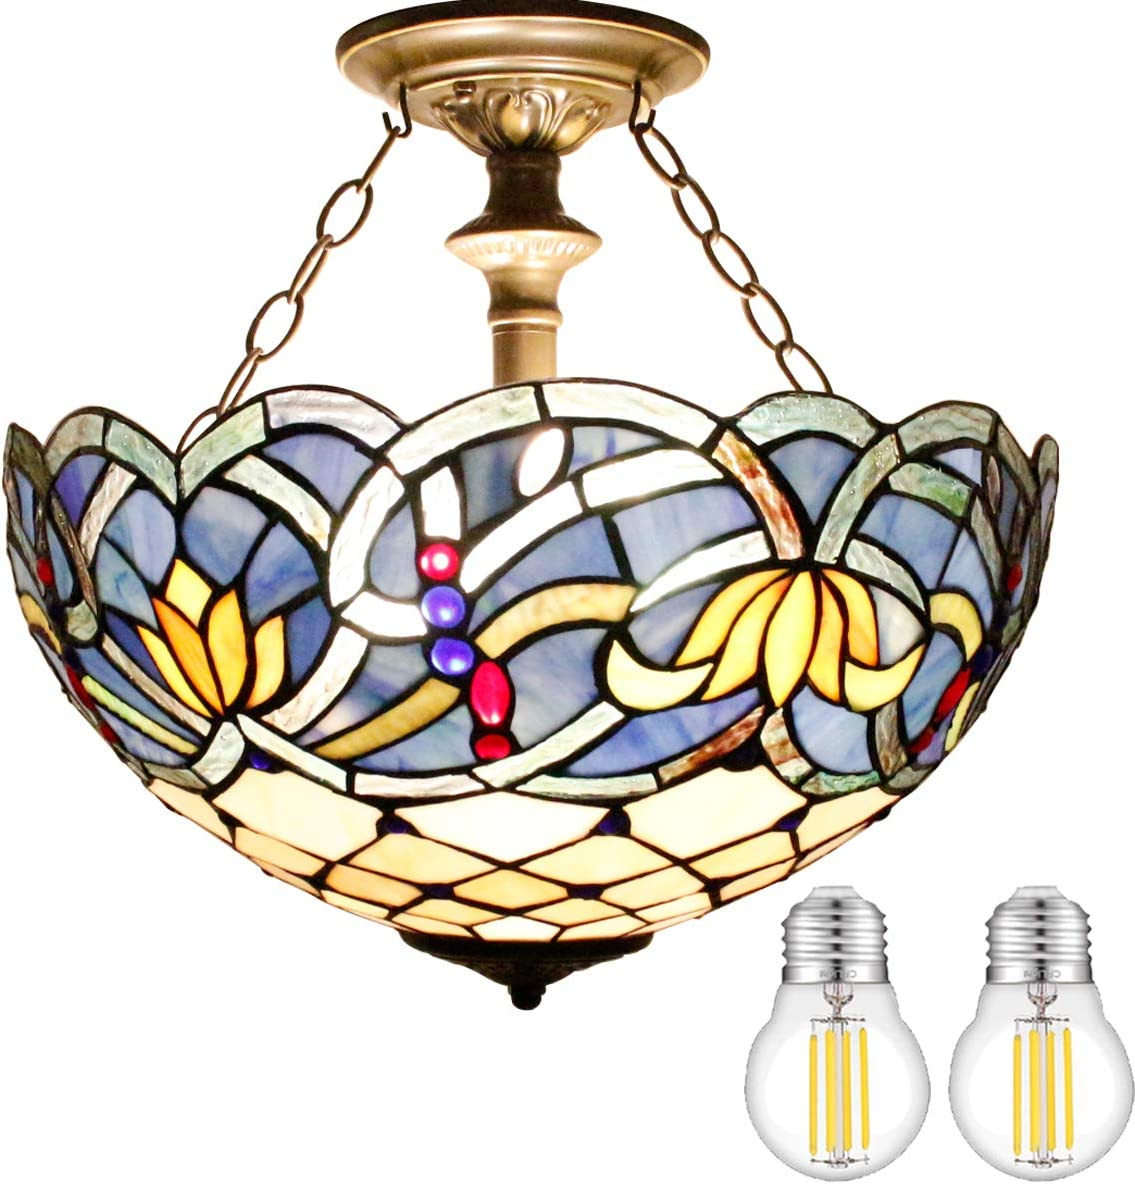 Tiffany Ceiling Light Fixture Semi Blue New color Stained Mount New arrival Flush 16